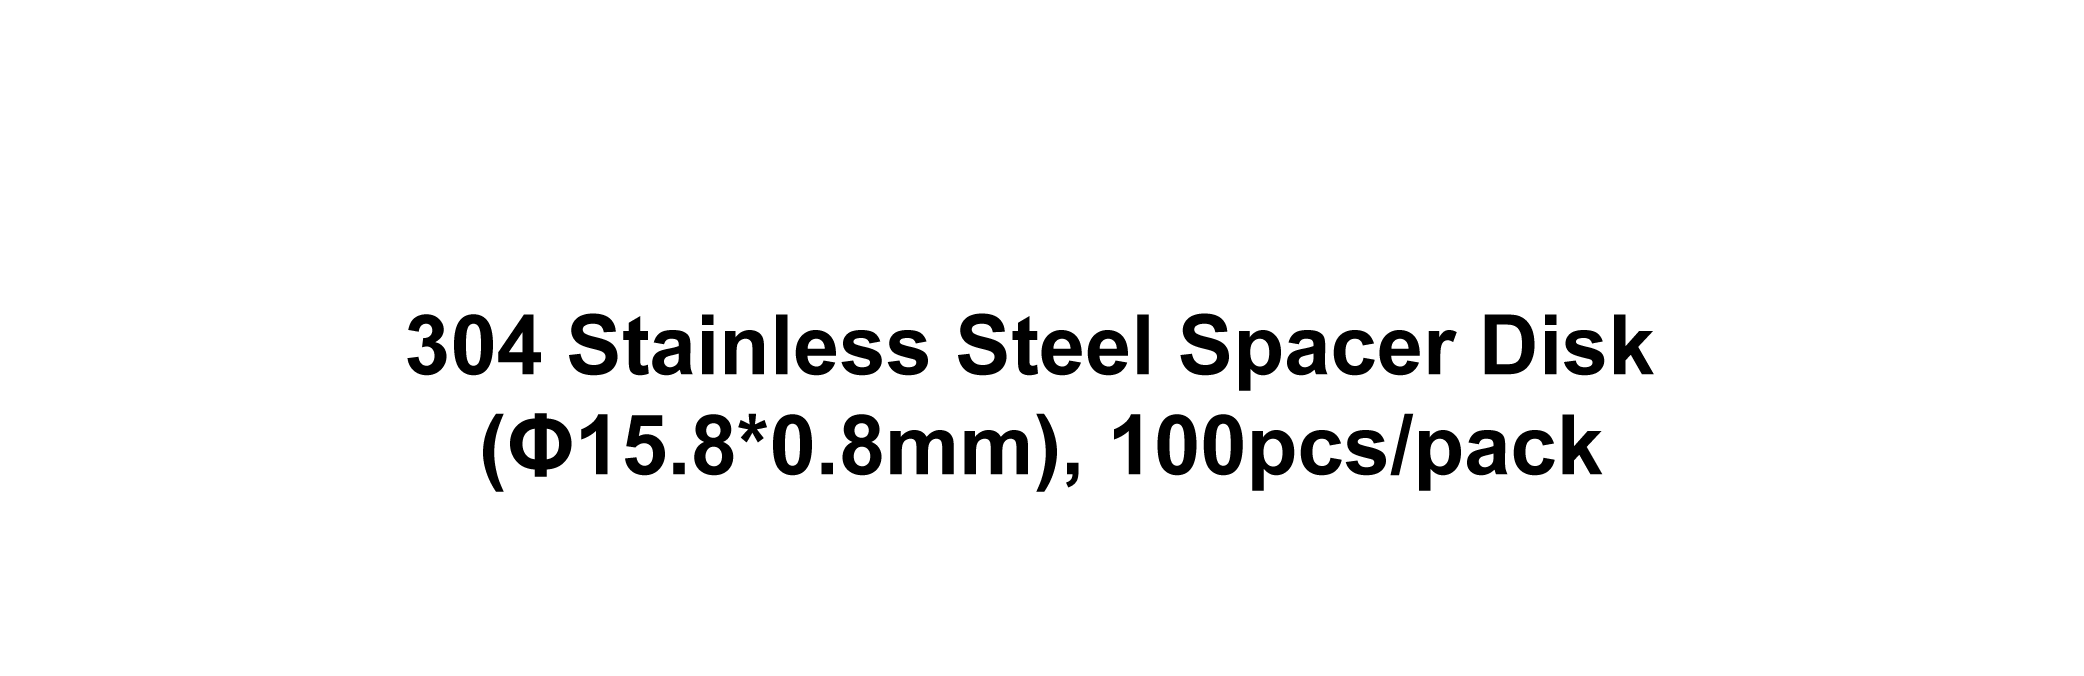 304 Stainless Steel Spacer Disk (Φ15.8*0.8mm), 100pcs/pack